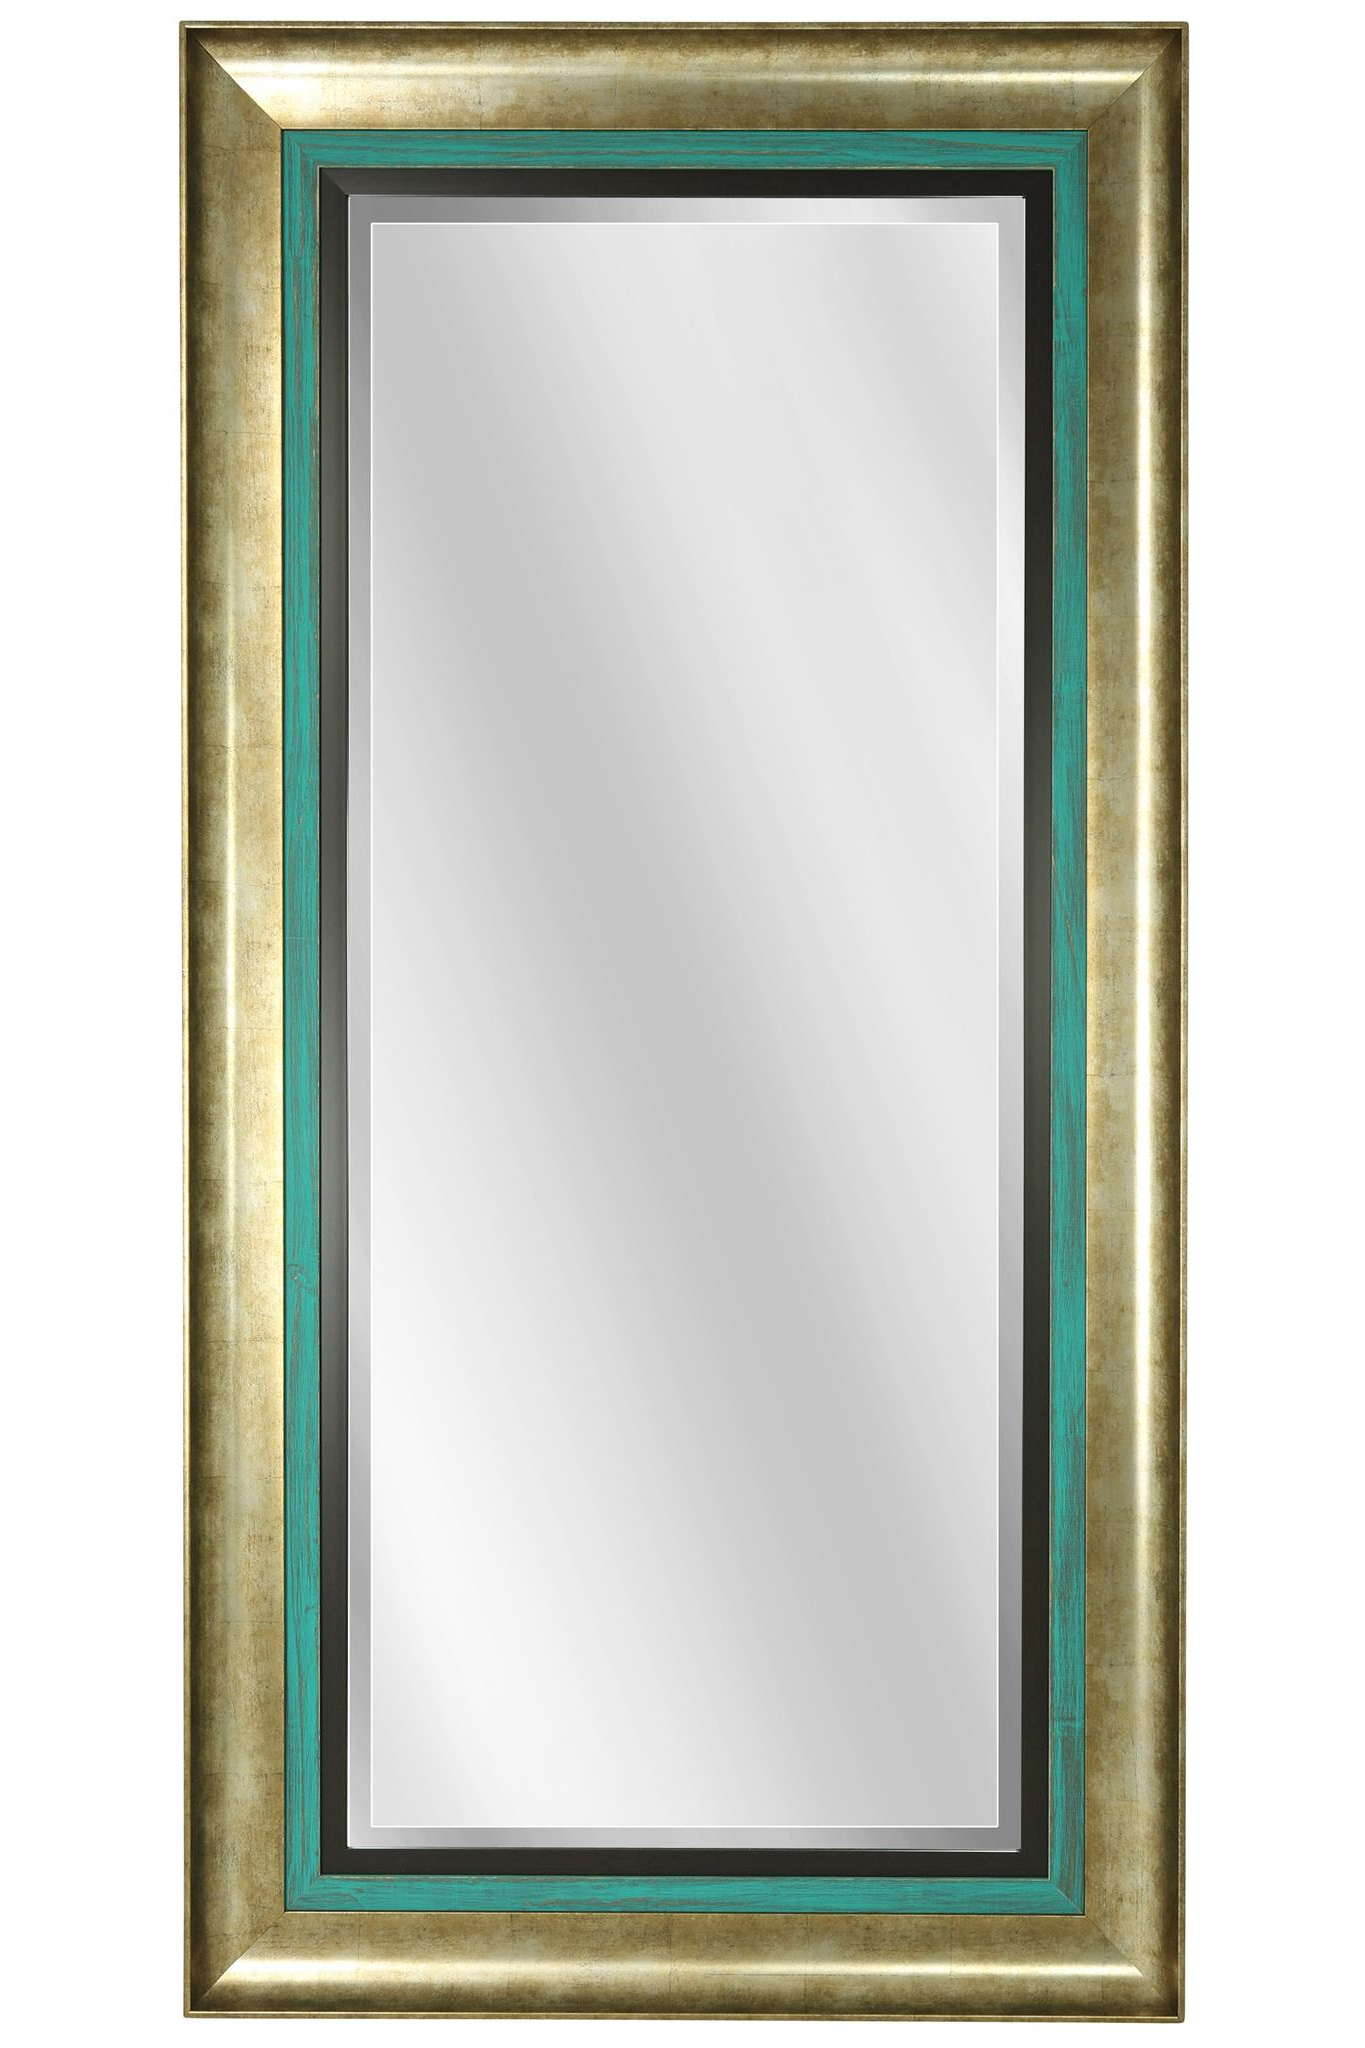 Popular Gold And Turquoise Framed Wall Mirror Throughout Turquoise Wall Mirrors (View 8 of 20)